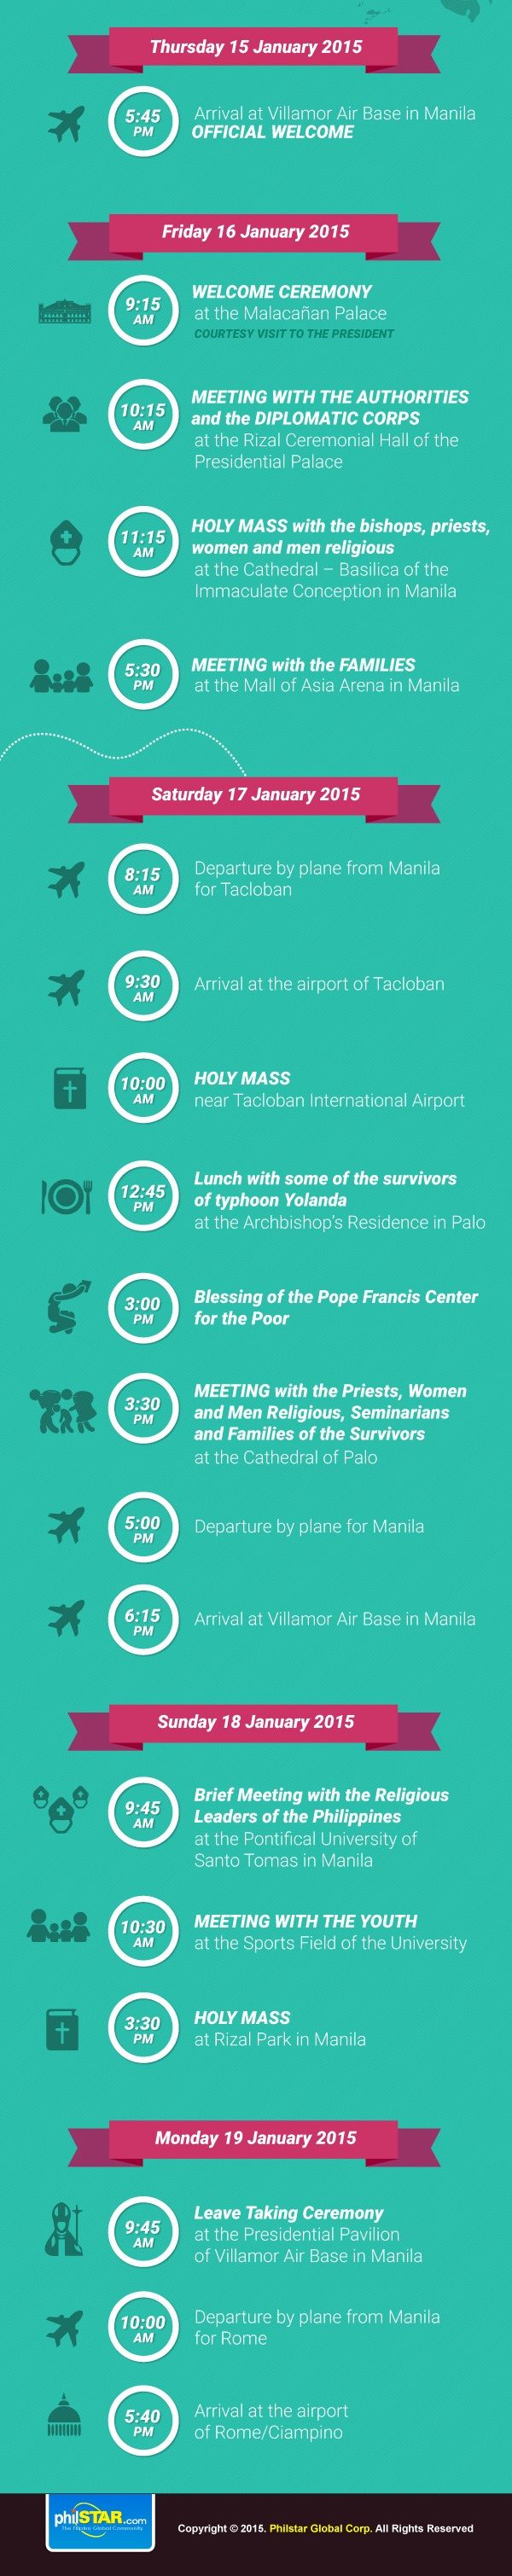 INFOGRAPHIC: Schedule of Pope Francis' Philippines visit | Headlines, News, The Philippine Star | philstar.com